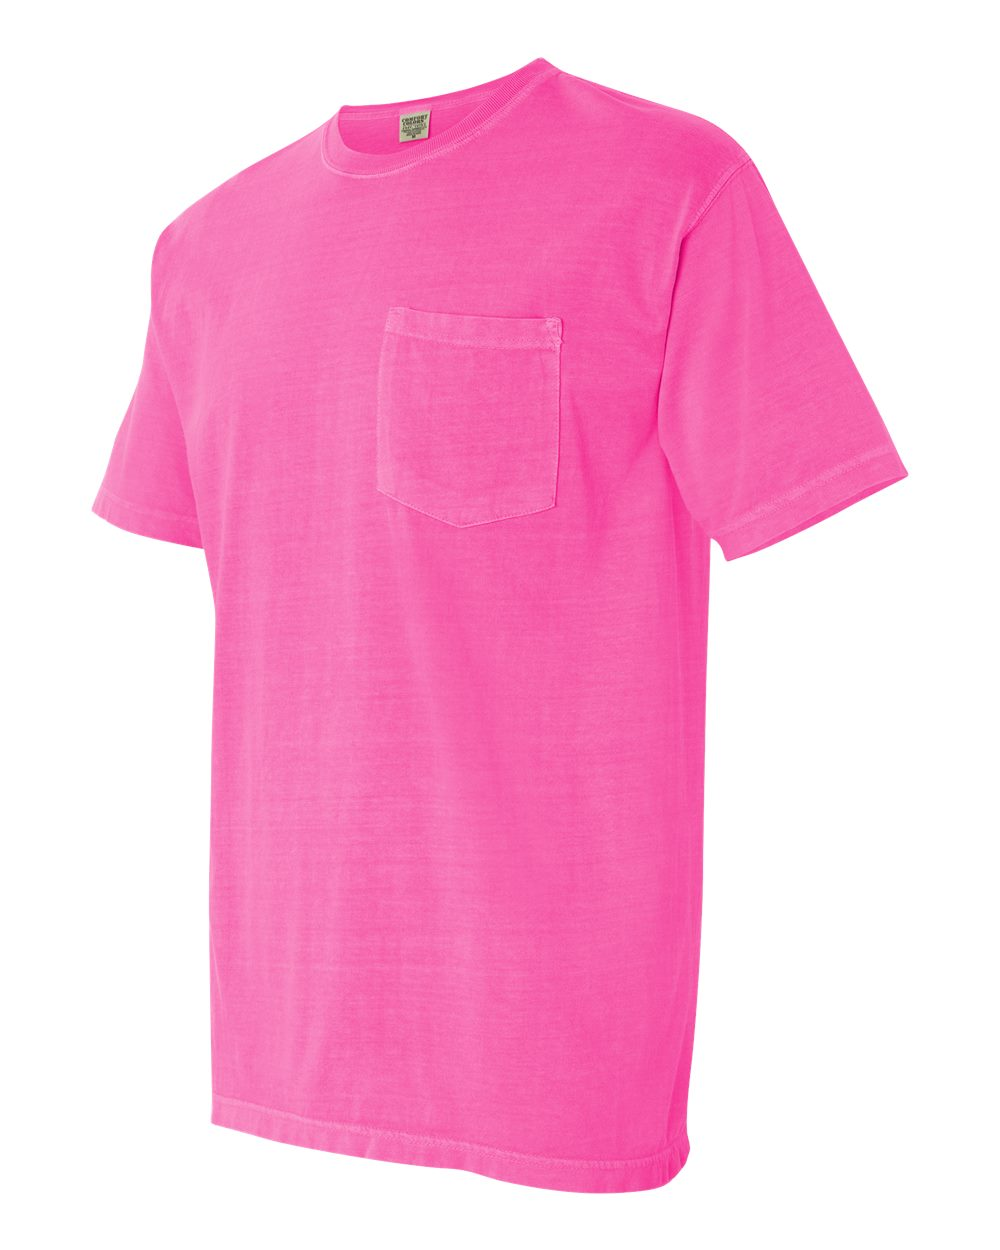 Comfort-Colors-Men-039-s-6-1-oz-Garment-Dyed-Pocket-T-Shirt-6030CC-S-3XL thumbnail 101